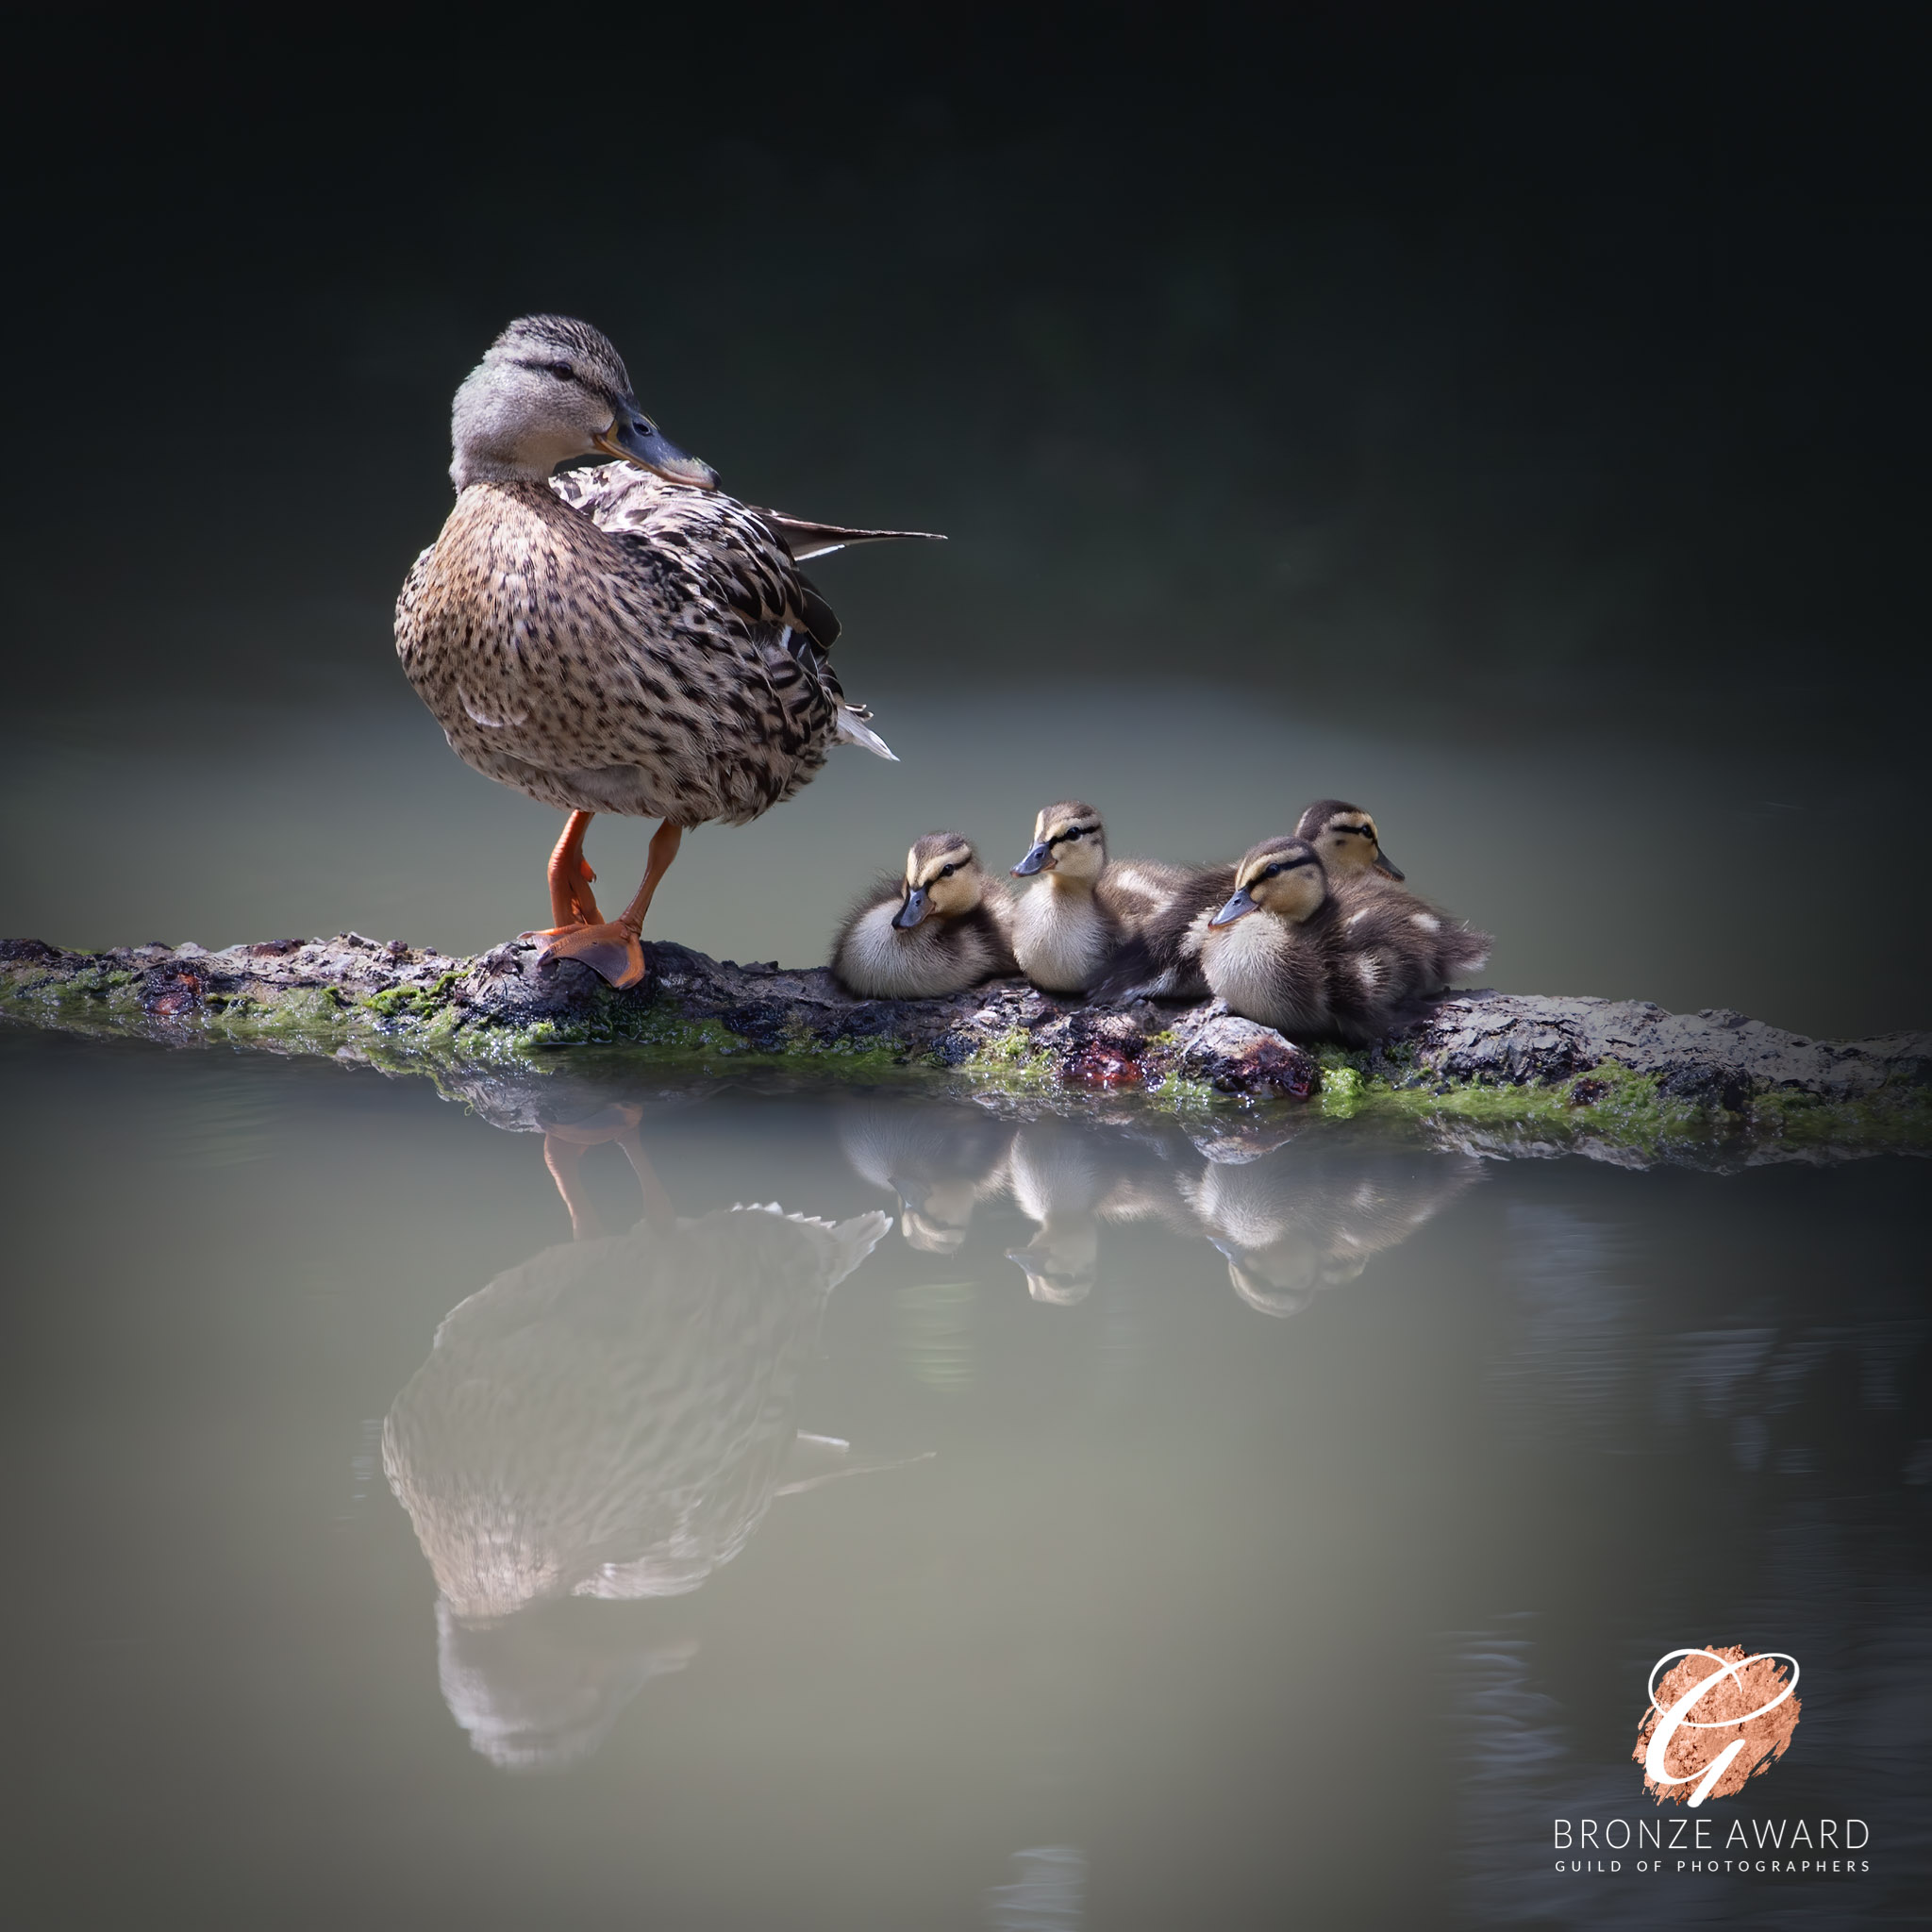 A cute image of a duck with 4 ducklings resting on a log in water